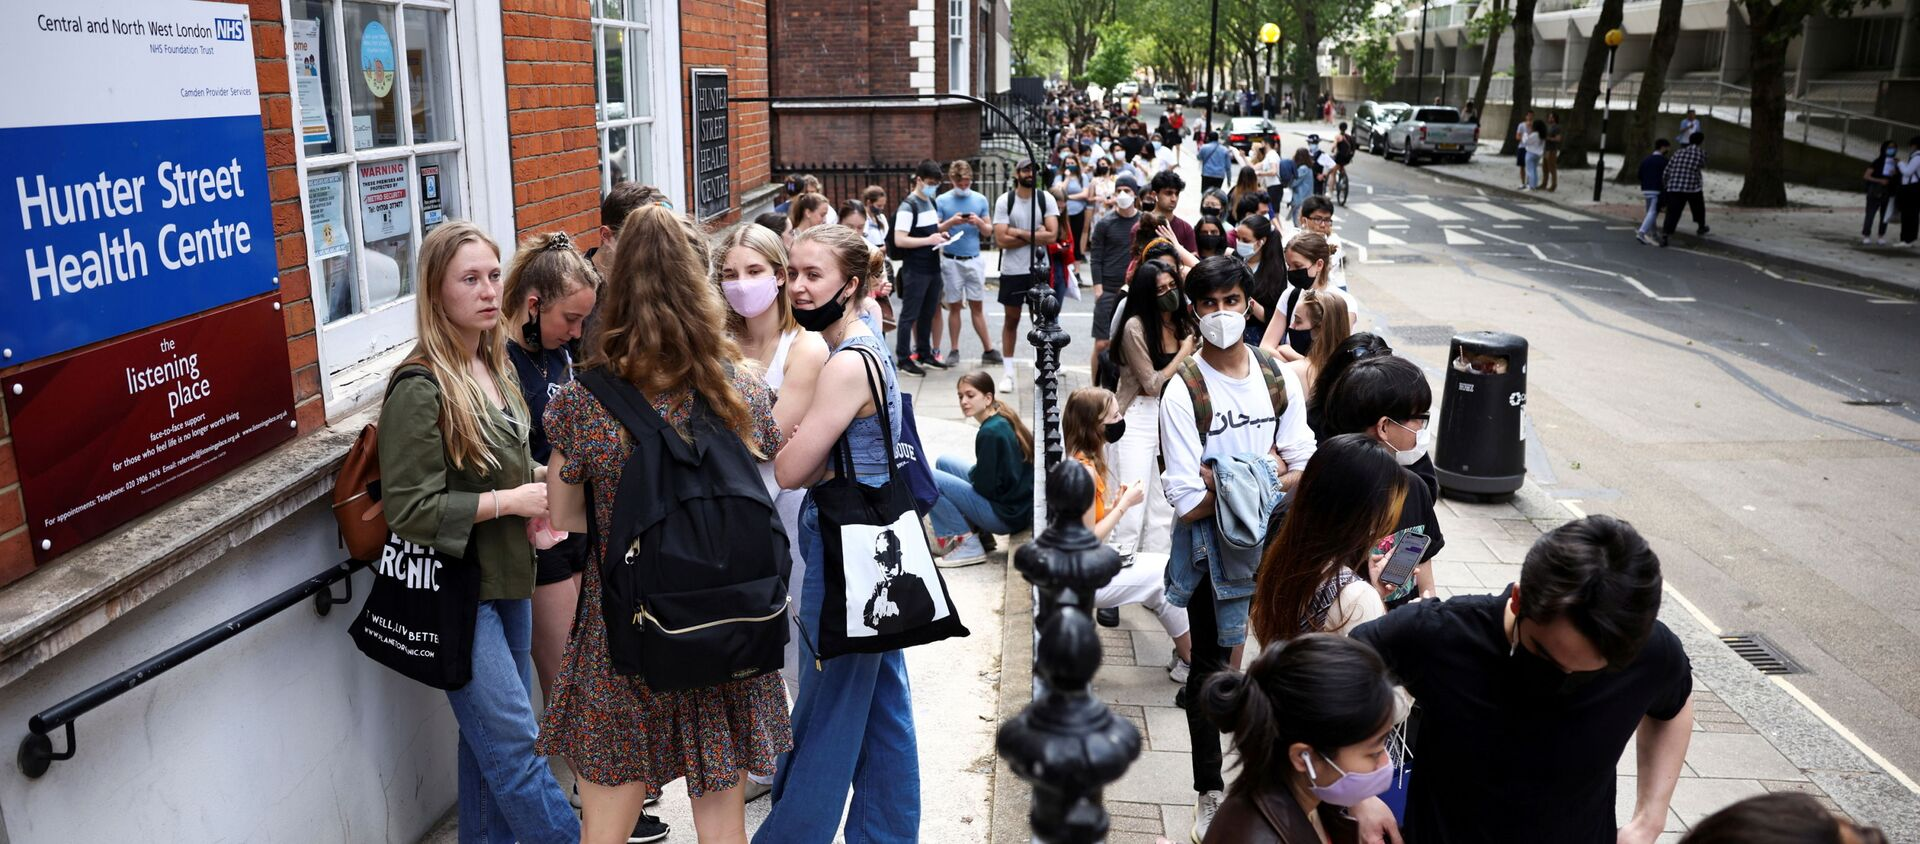 People queue outside a vaccination centre for young people and students at the Hunter Street Health Centre, amid the coronavirus disease (COVID-19) outbreak, in London, Britain, June 5, 2021 - Sputnik International, 1920, 19.07.2021